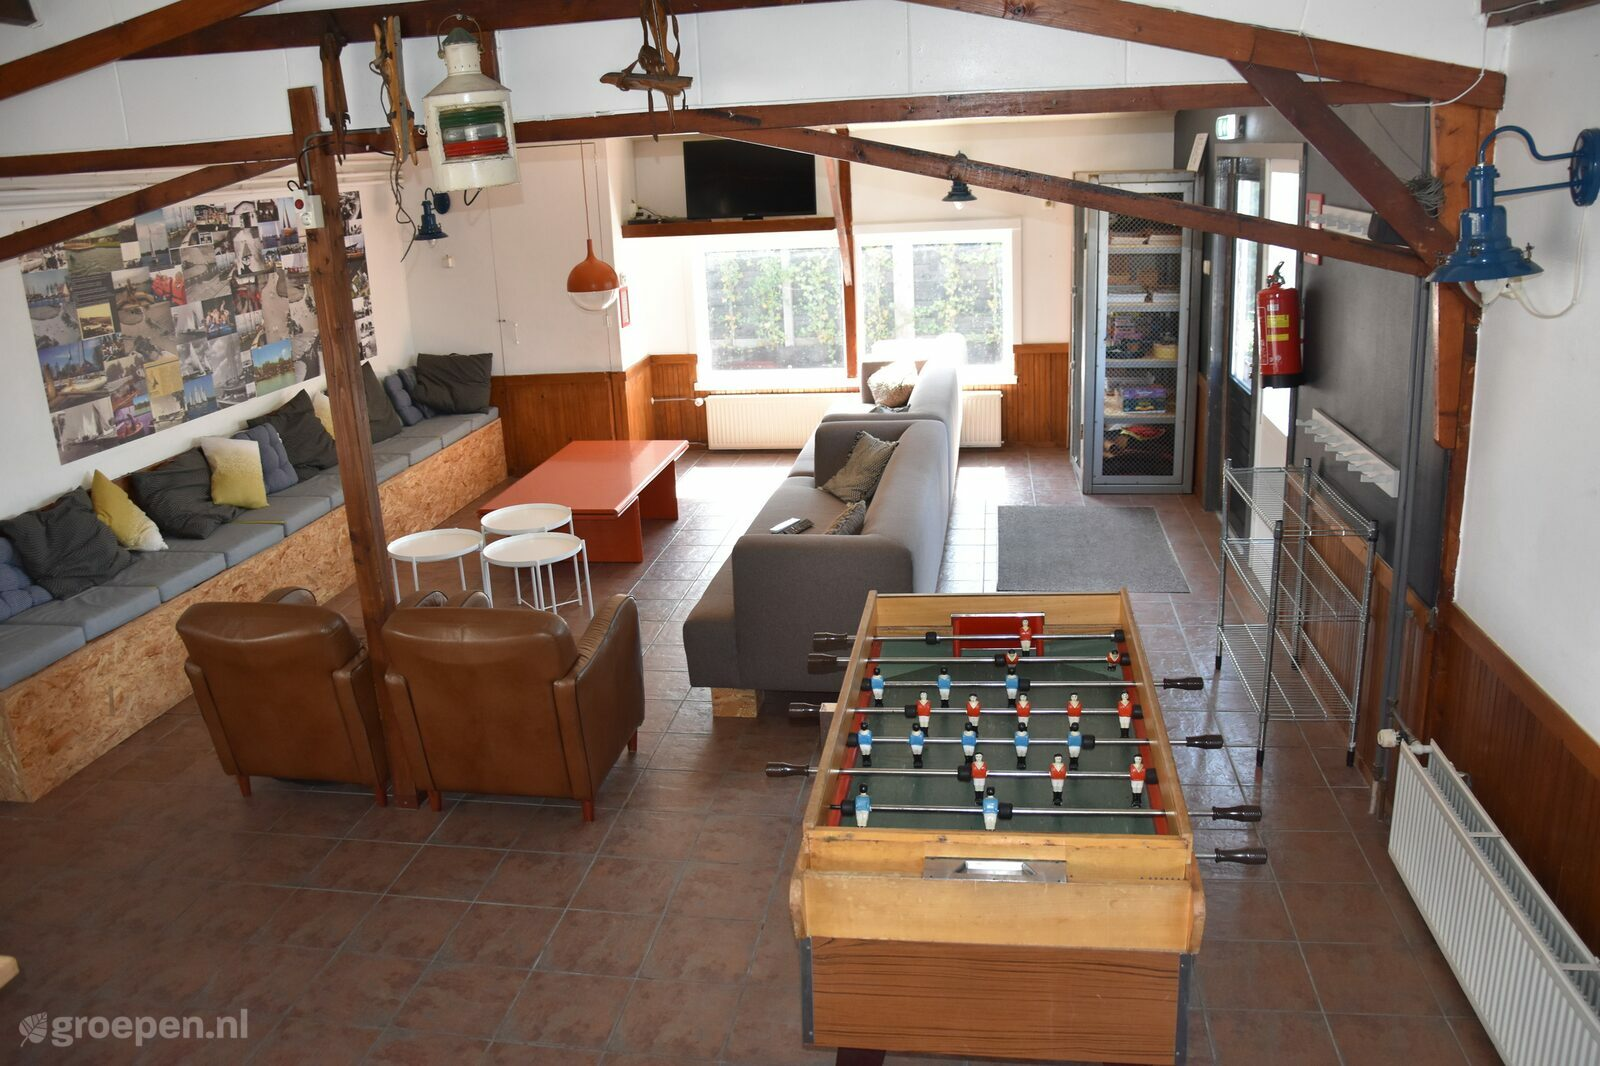 Group accommodation Sneek